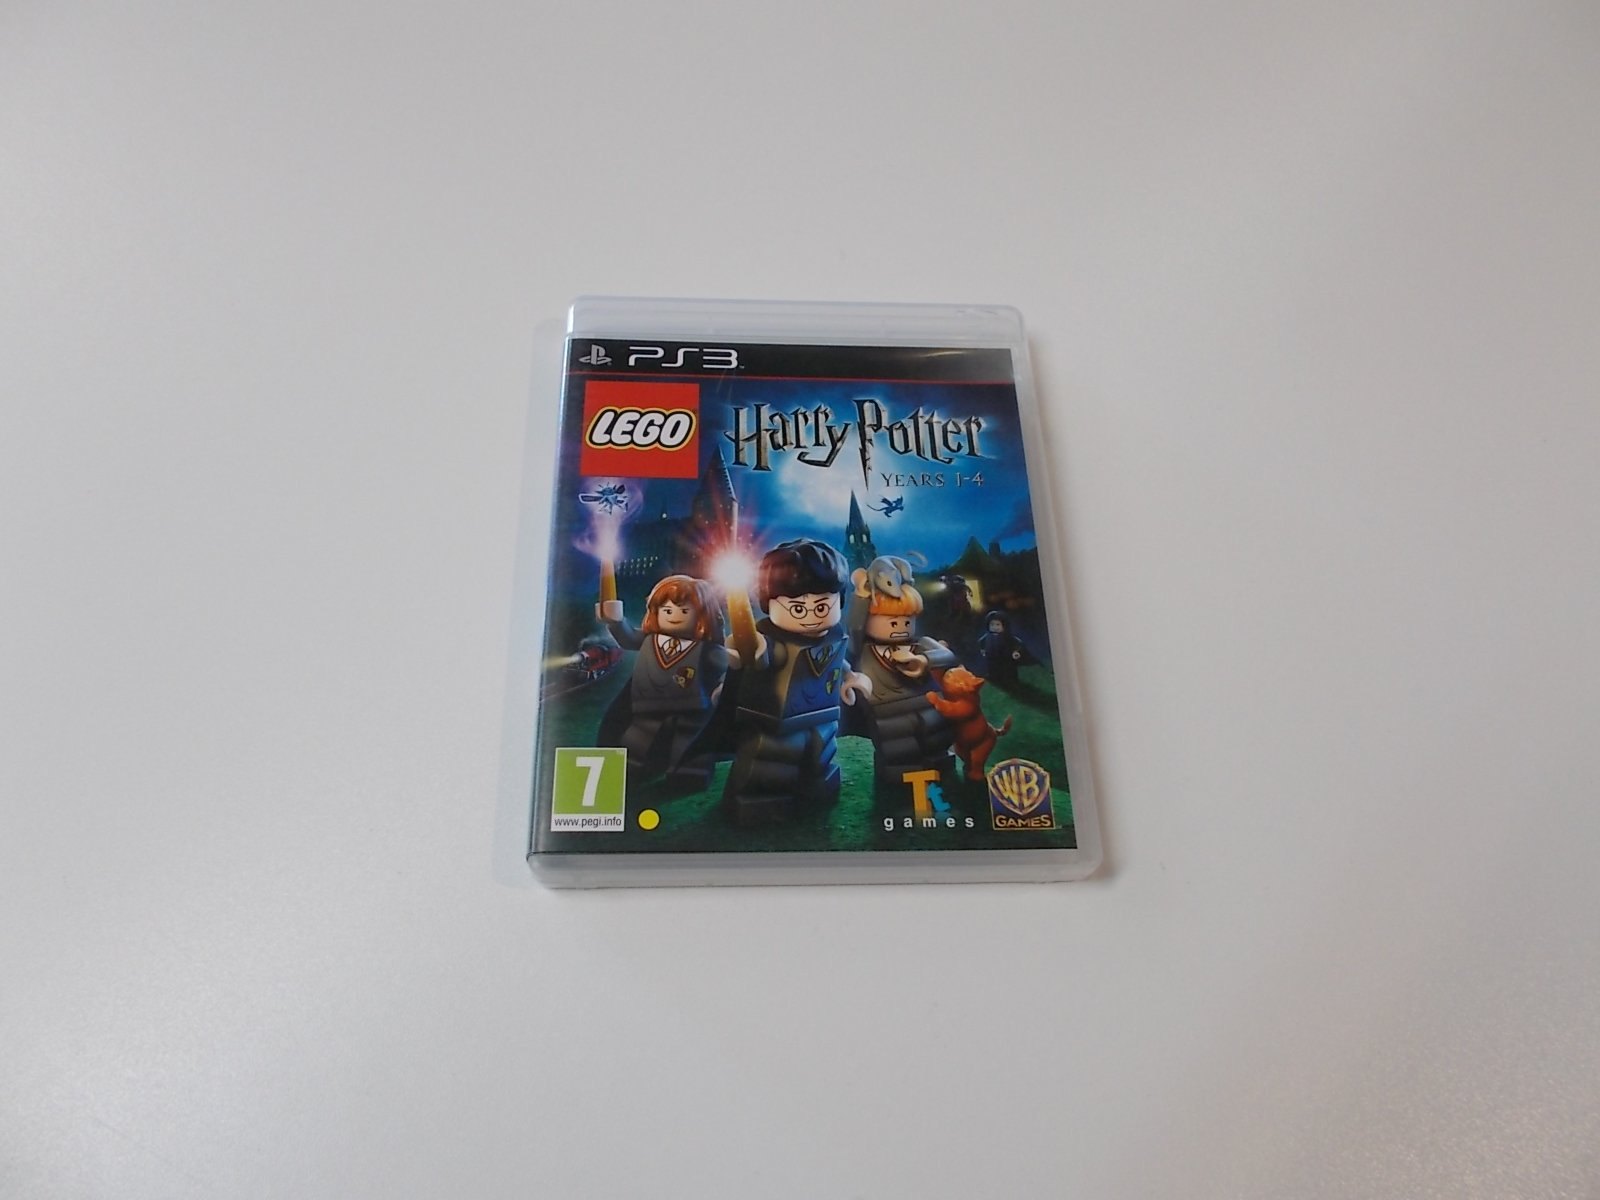 Lego Harry Potter Yours 1-4 - GRA Ps3 - Opole 0445